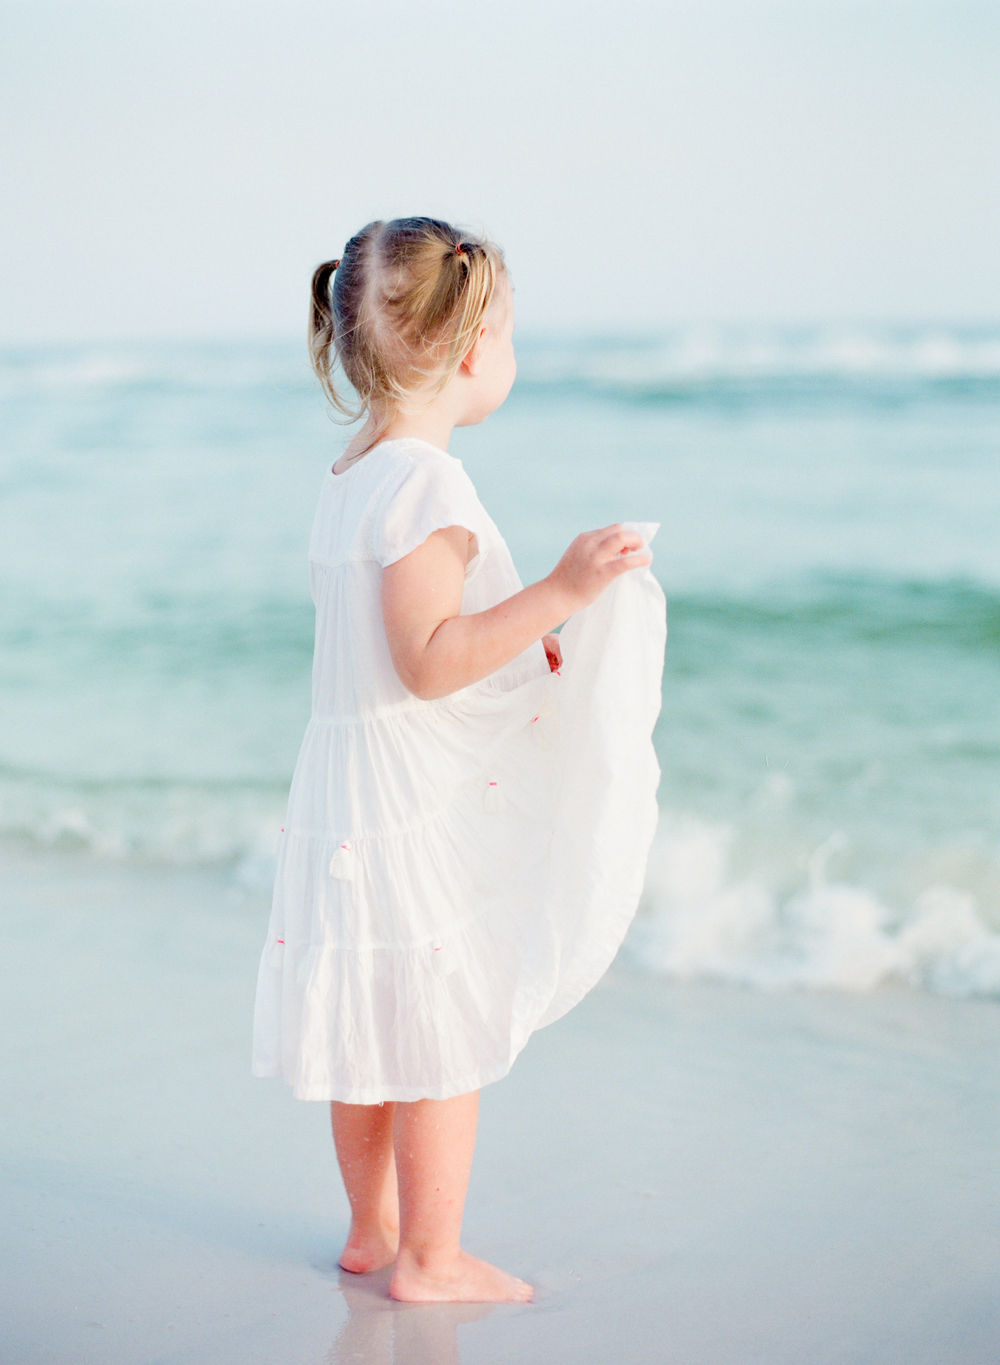 Little girl by the Sea | Kaylie B. Poplin Photography | Watercolor, Florida family and wedding photographer